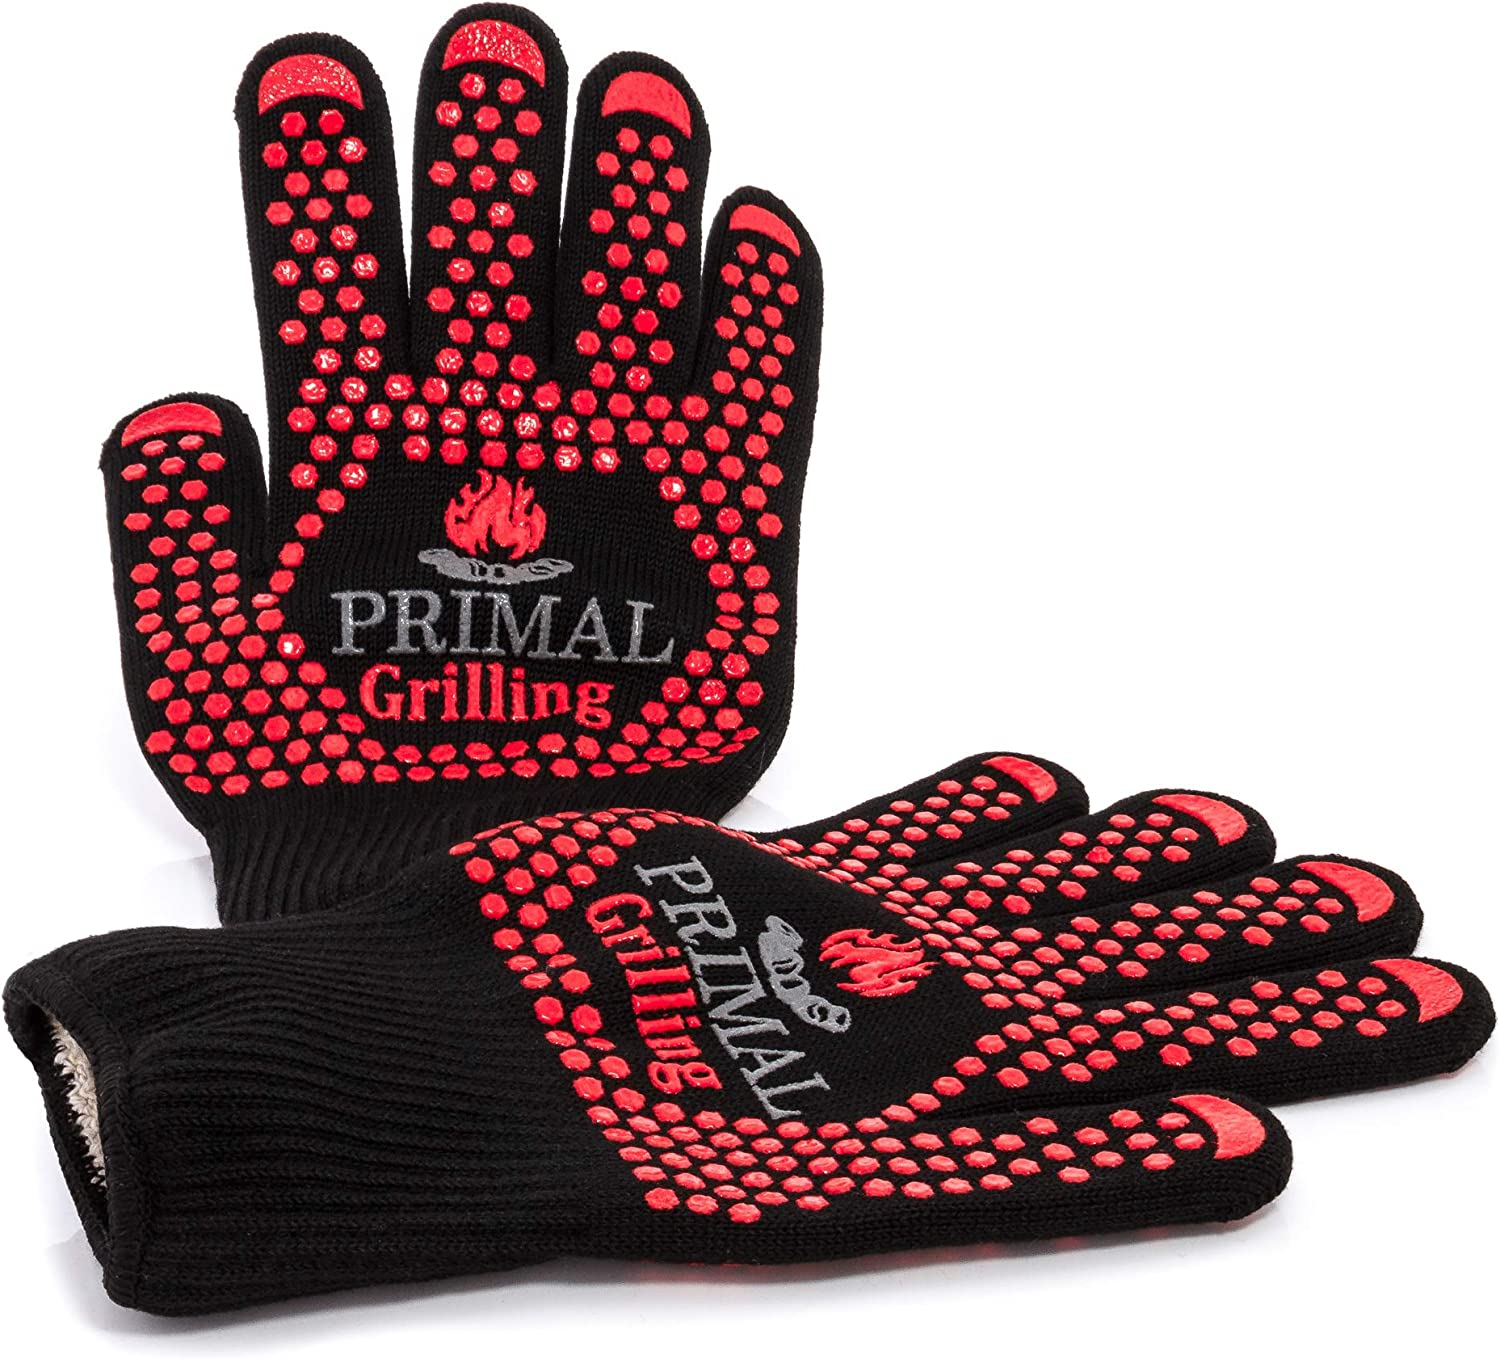 Primal Grilling Gloves, Ultra Heat Resistant Grill & Oven Mitts, Virtually Fireproof Cooking Gloves Designed to Withstand Temps up to 1472 F, for BBQ, Smoking, Baking, Fire Pit & More